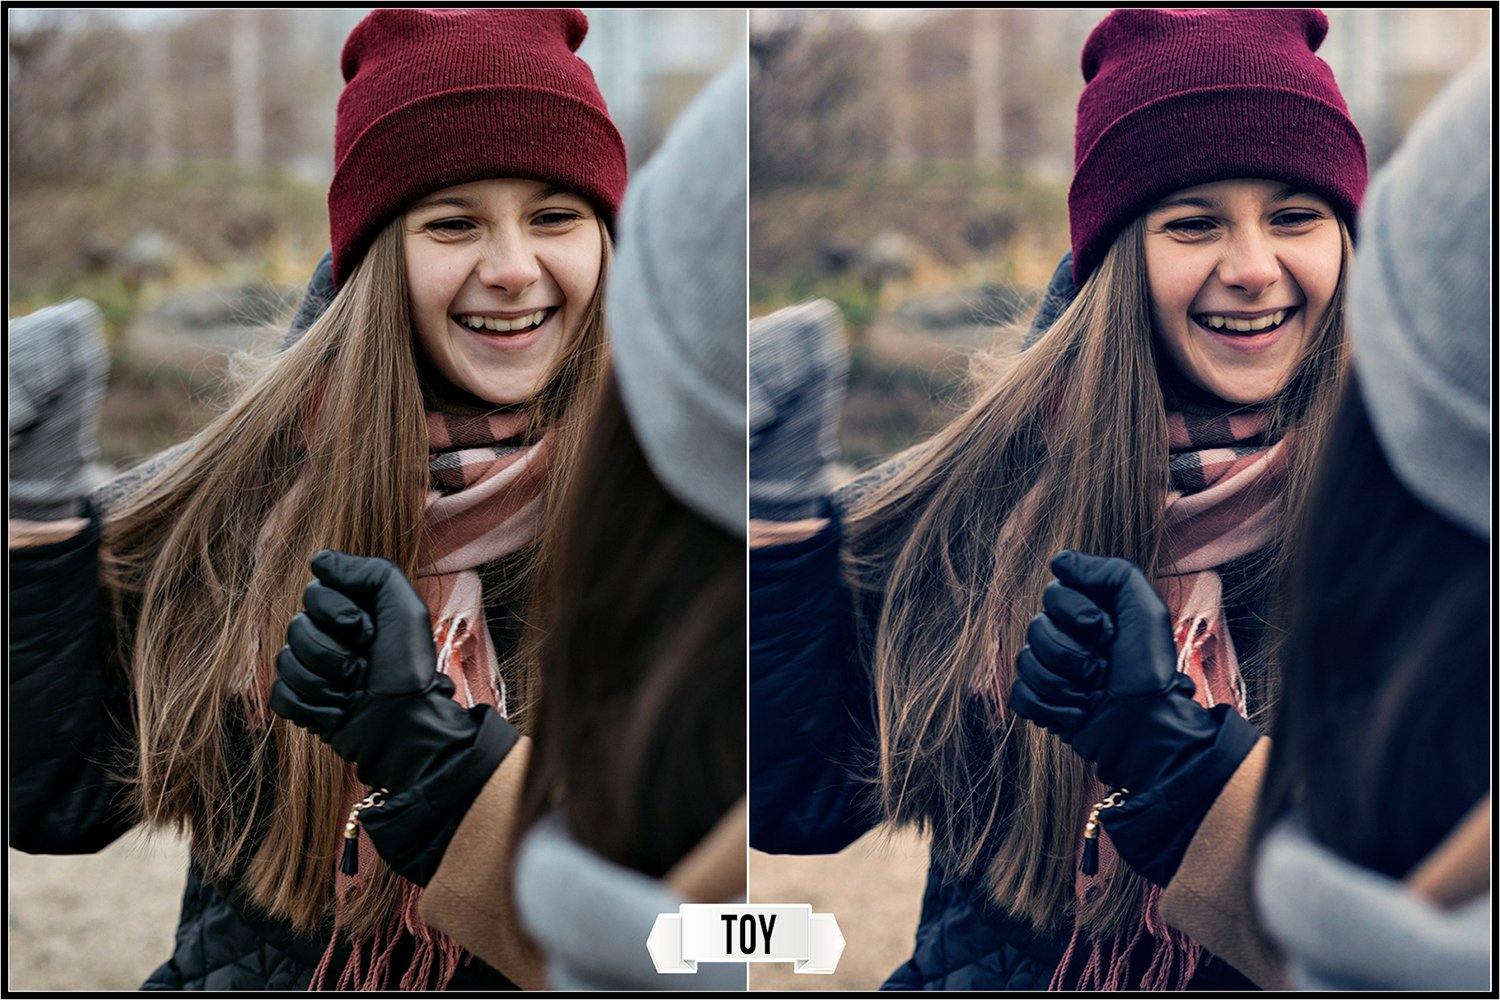 Picture Controls Inspired Vol. 1 profiles LR 7.3 ACR 10.3 example image 27